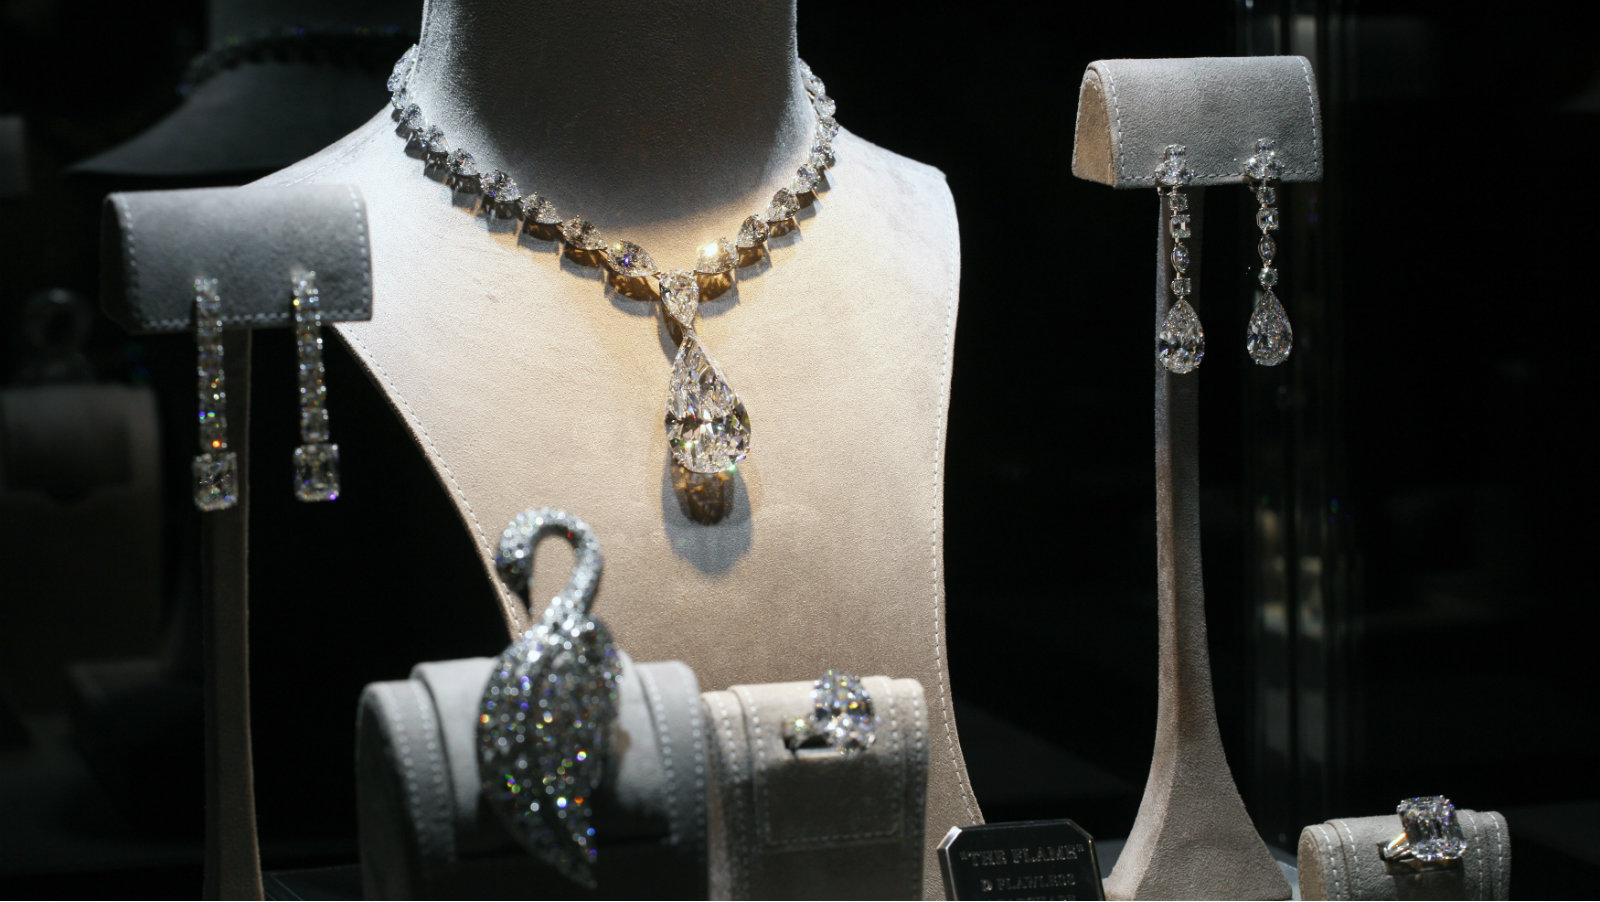 Jewellery are displayed at a window during the Graff Diamonds IPO roadshow in Hong Kong May 21, 2012. Luxury jeweler Graff Diamonds, famous for its giant and rare gems, is forging ahead with a Hong Kong listing despite a sell-off that has rattled equity markets, setting a price range on Friday that would value the company at up to $4 billion.